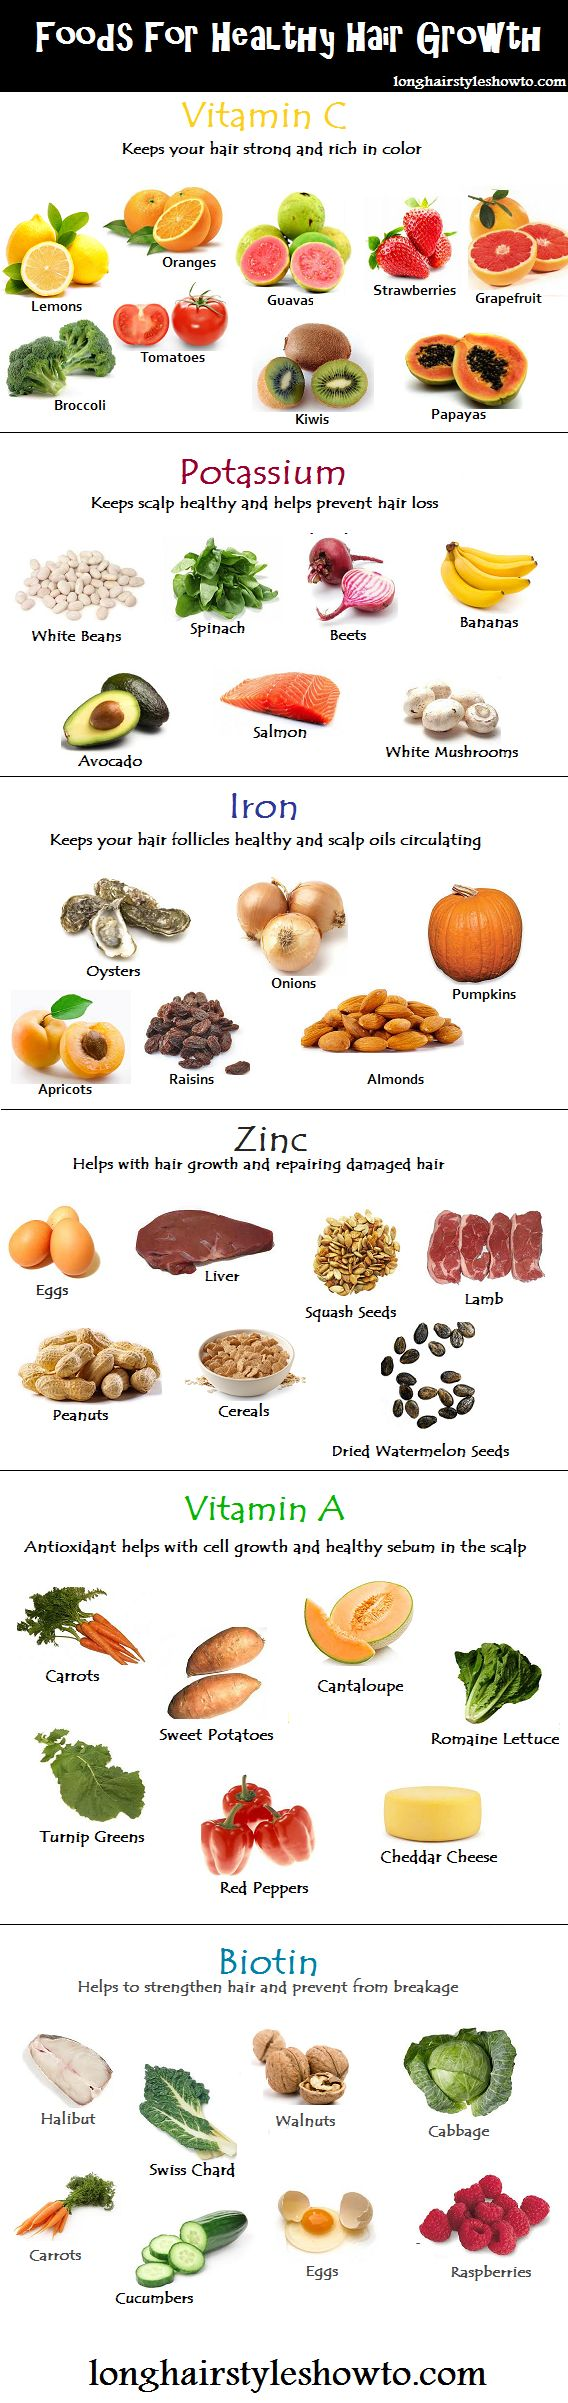 foods for healthy hair growth- not to worried about the hair growth thing, but nice to have a chart with a breakdown of the nutrients from each veggie/fruit